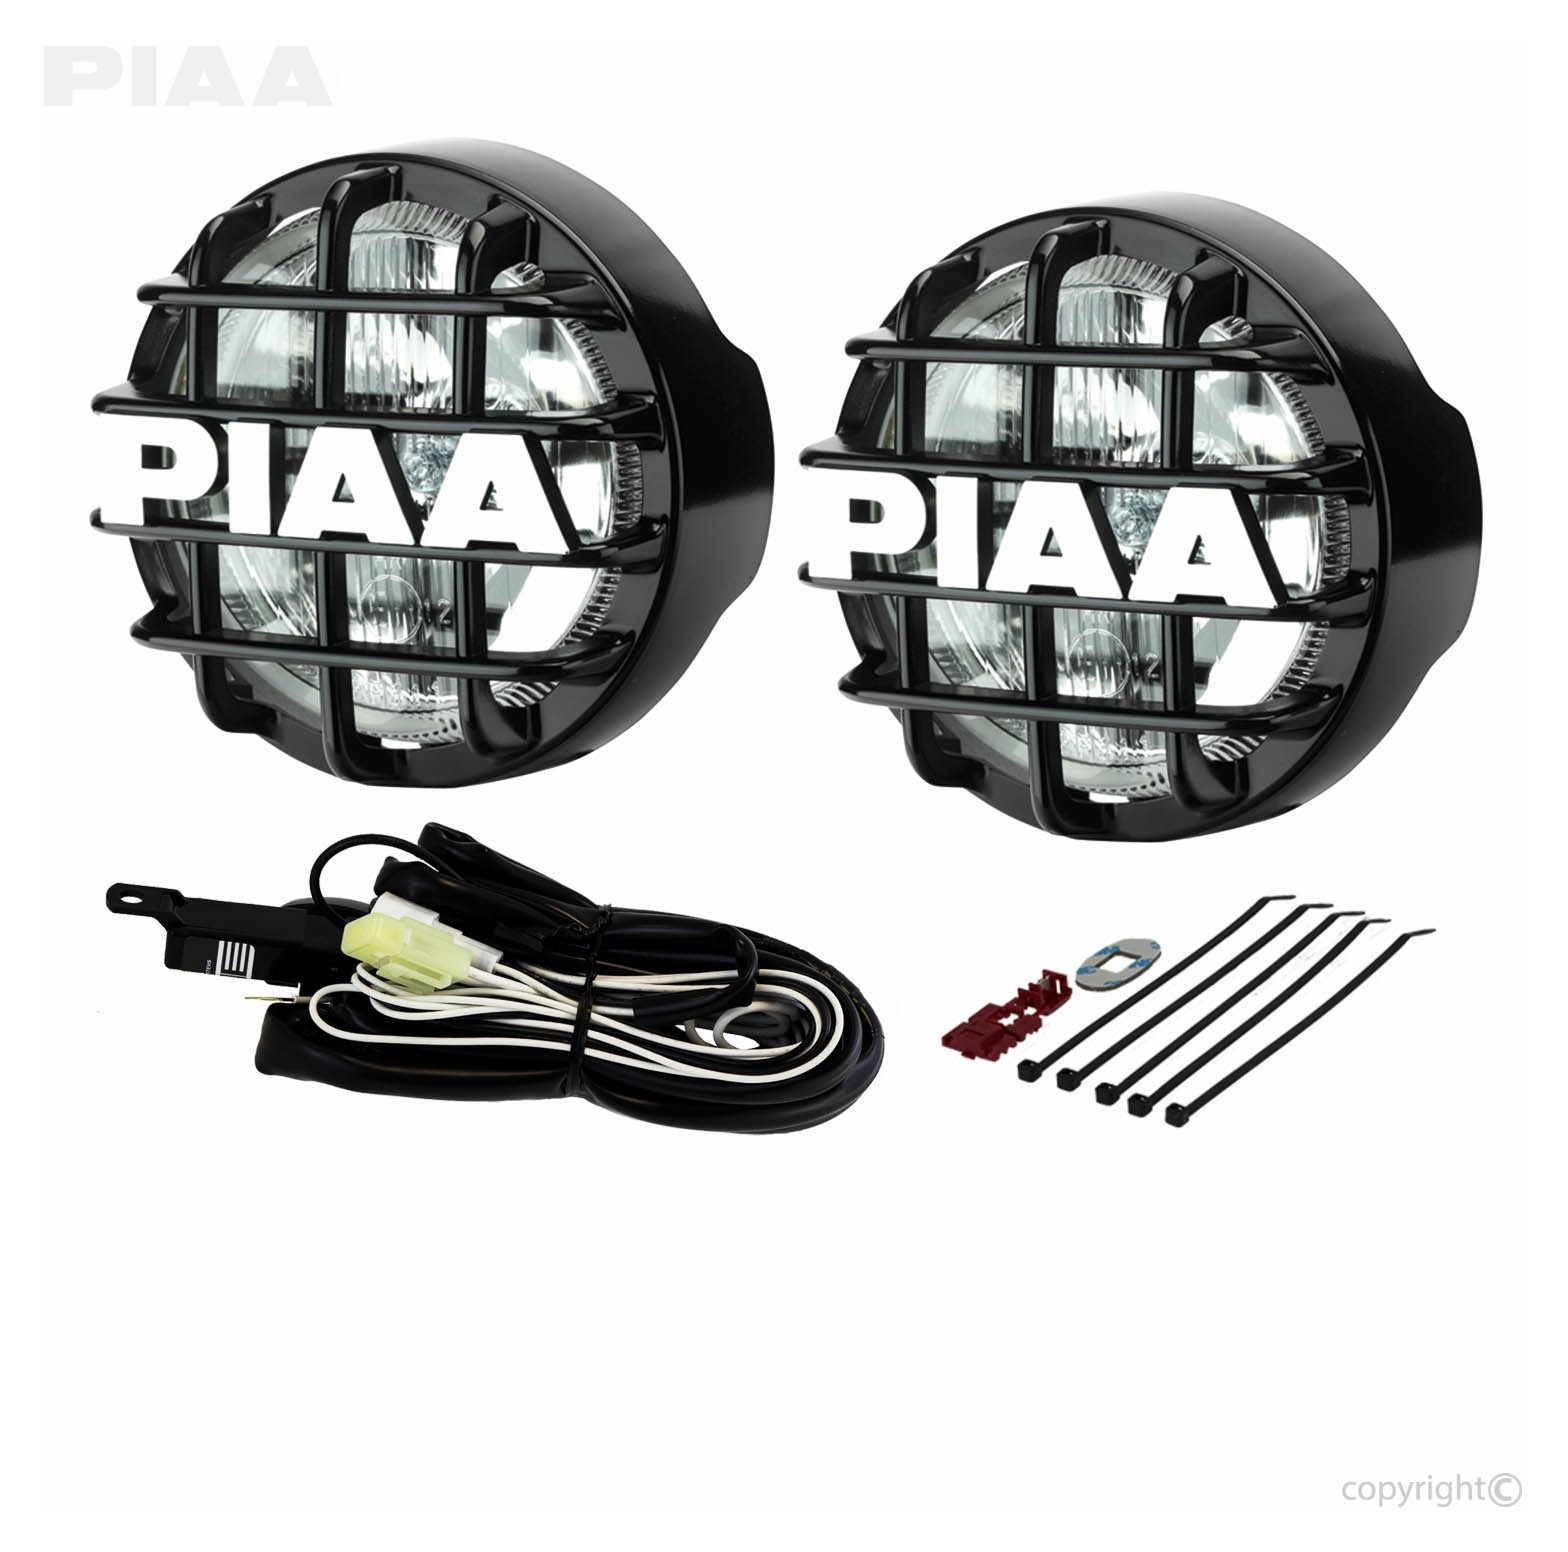 Piaa 510 Wiring Diagram Libraries Harness Librarypiaa Star White Atp Light Kit Cycle Gear